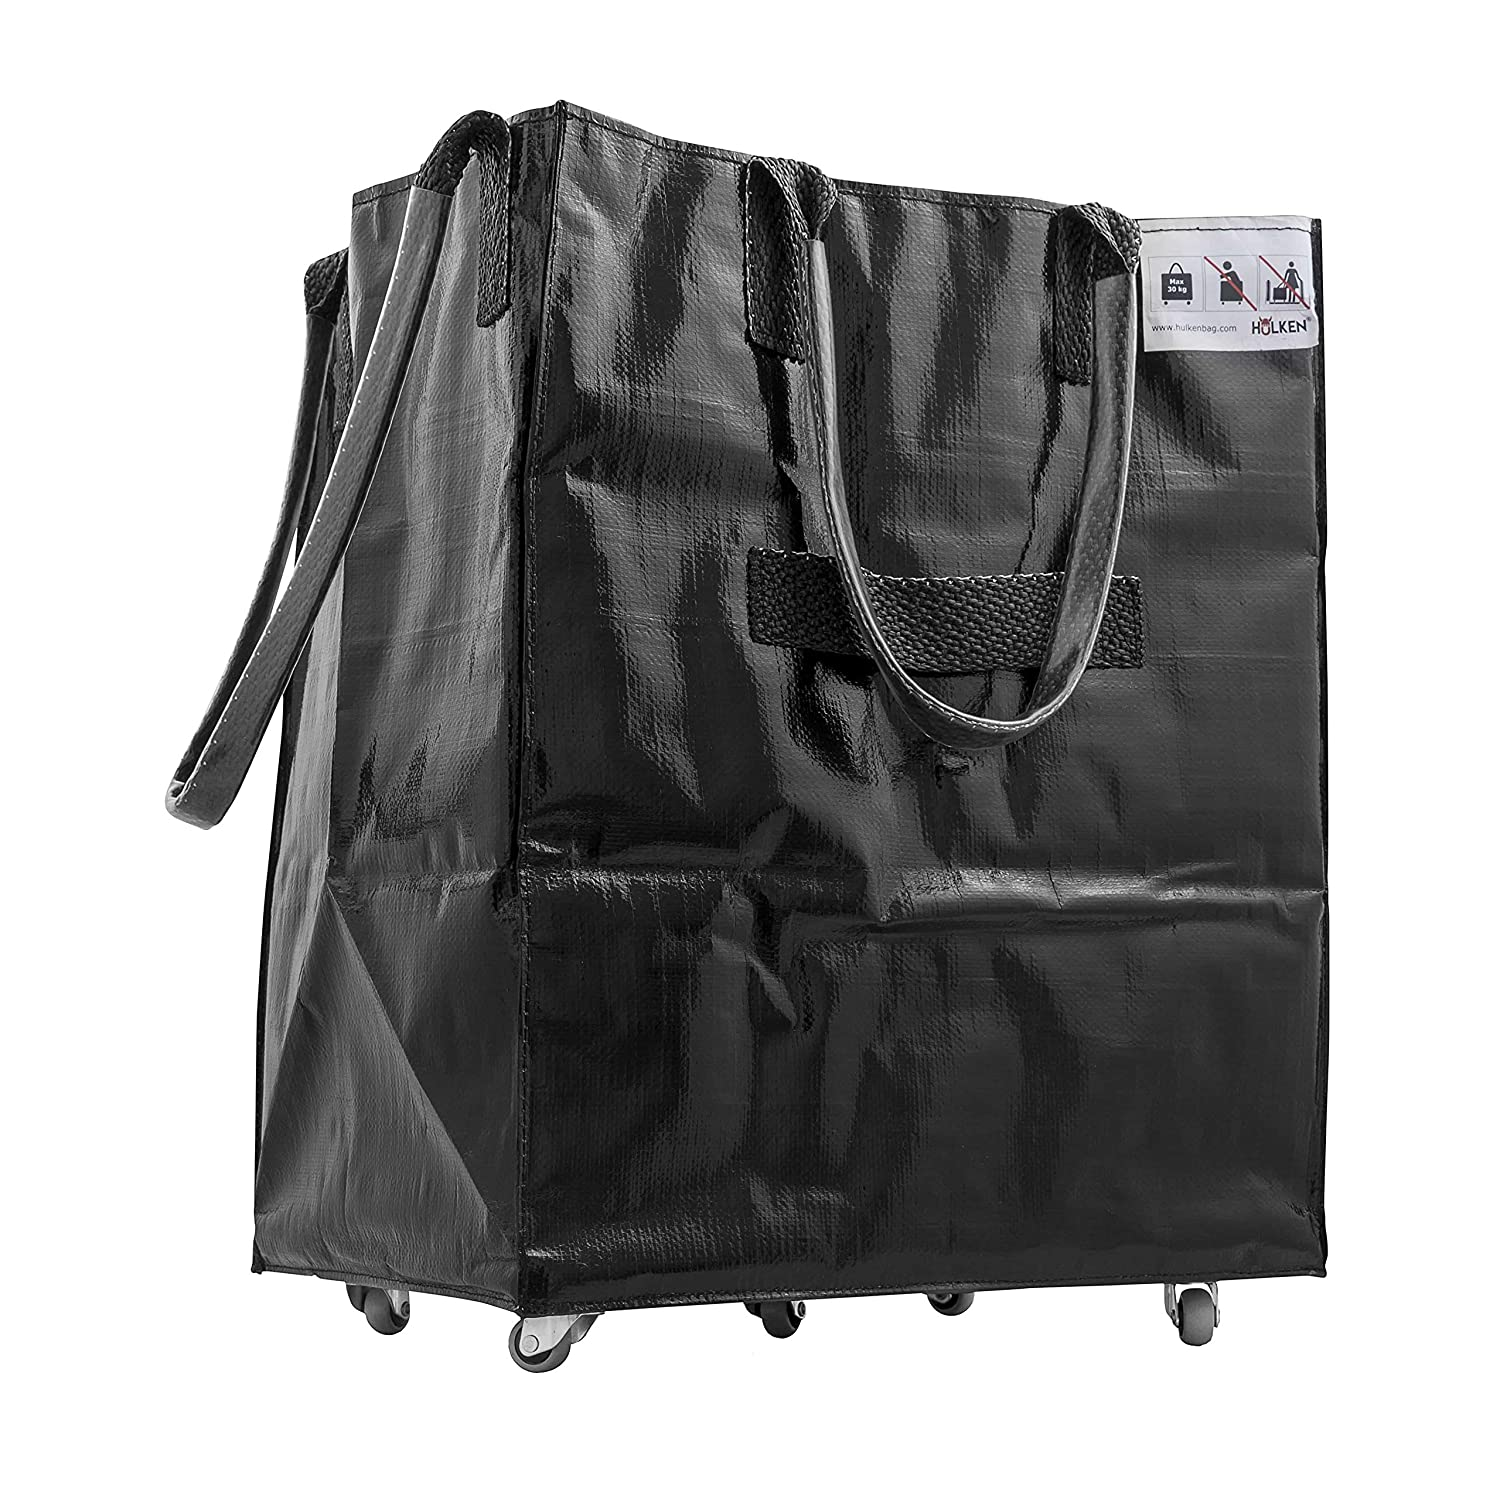 HULKEN – Single Large, Shiny Black Grocery Shopping Bag With Stainless Steel Wheels, Lightweight, Can Carry Up To 66 lb, Folds Flat, 3 Built-In Handles